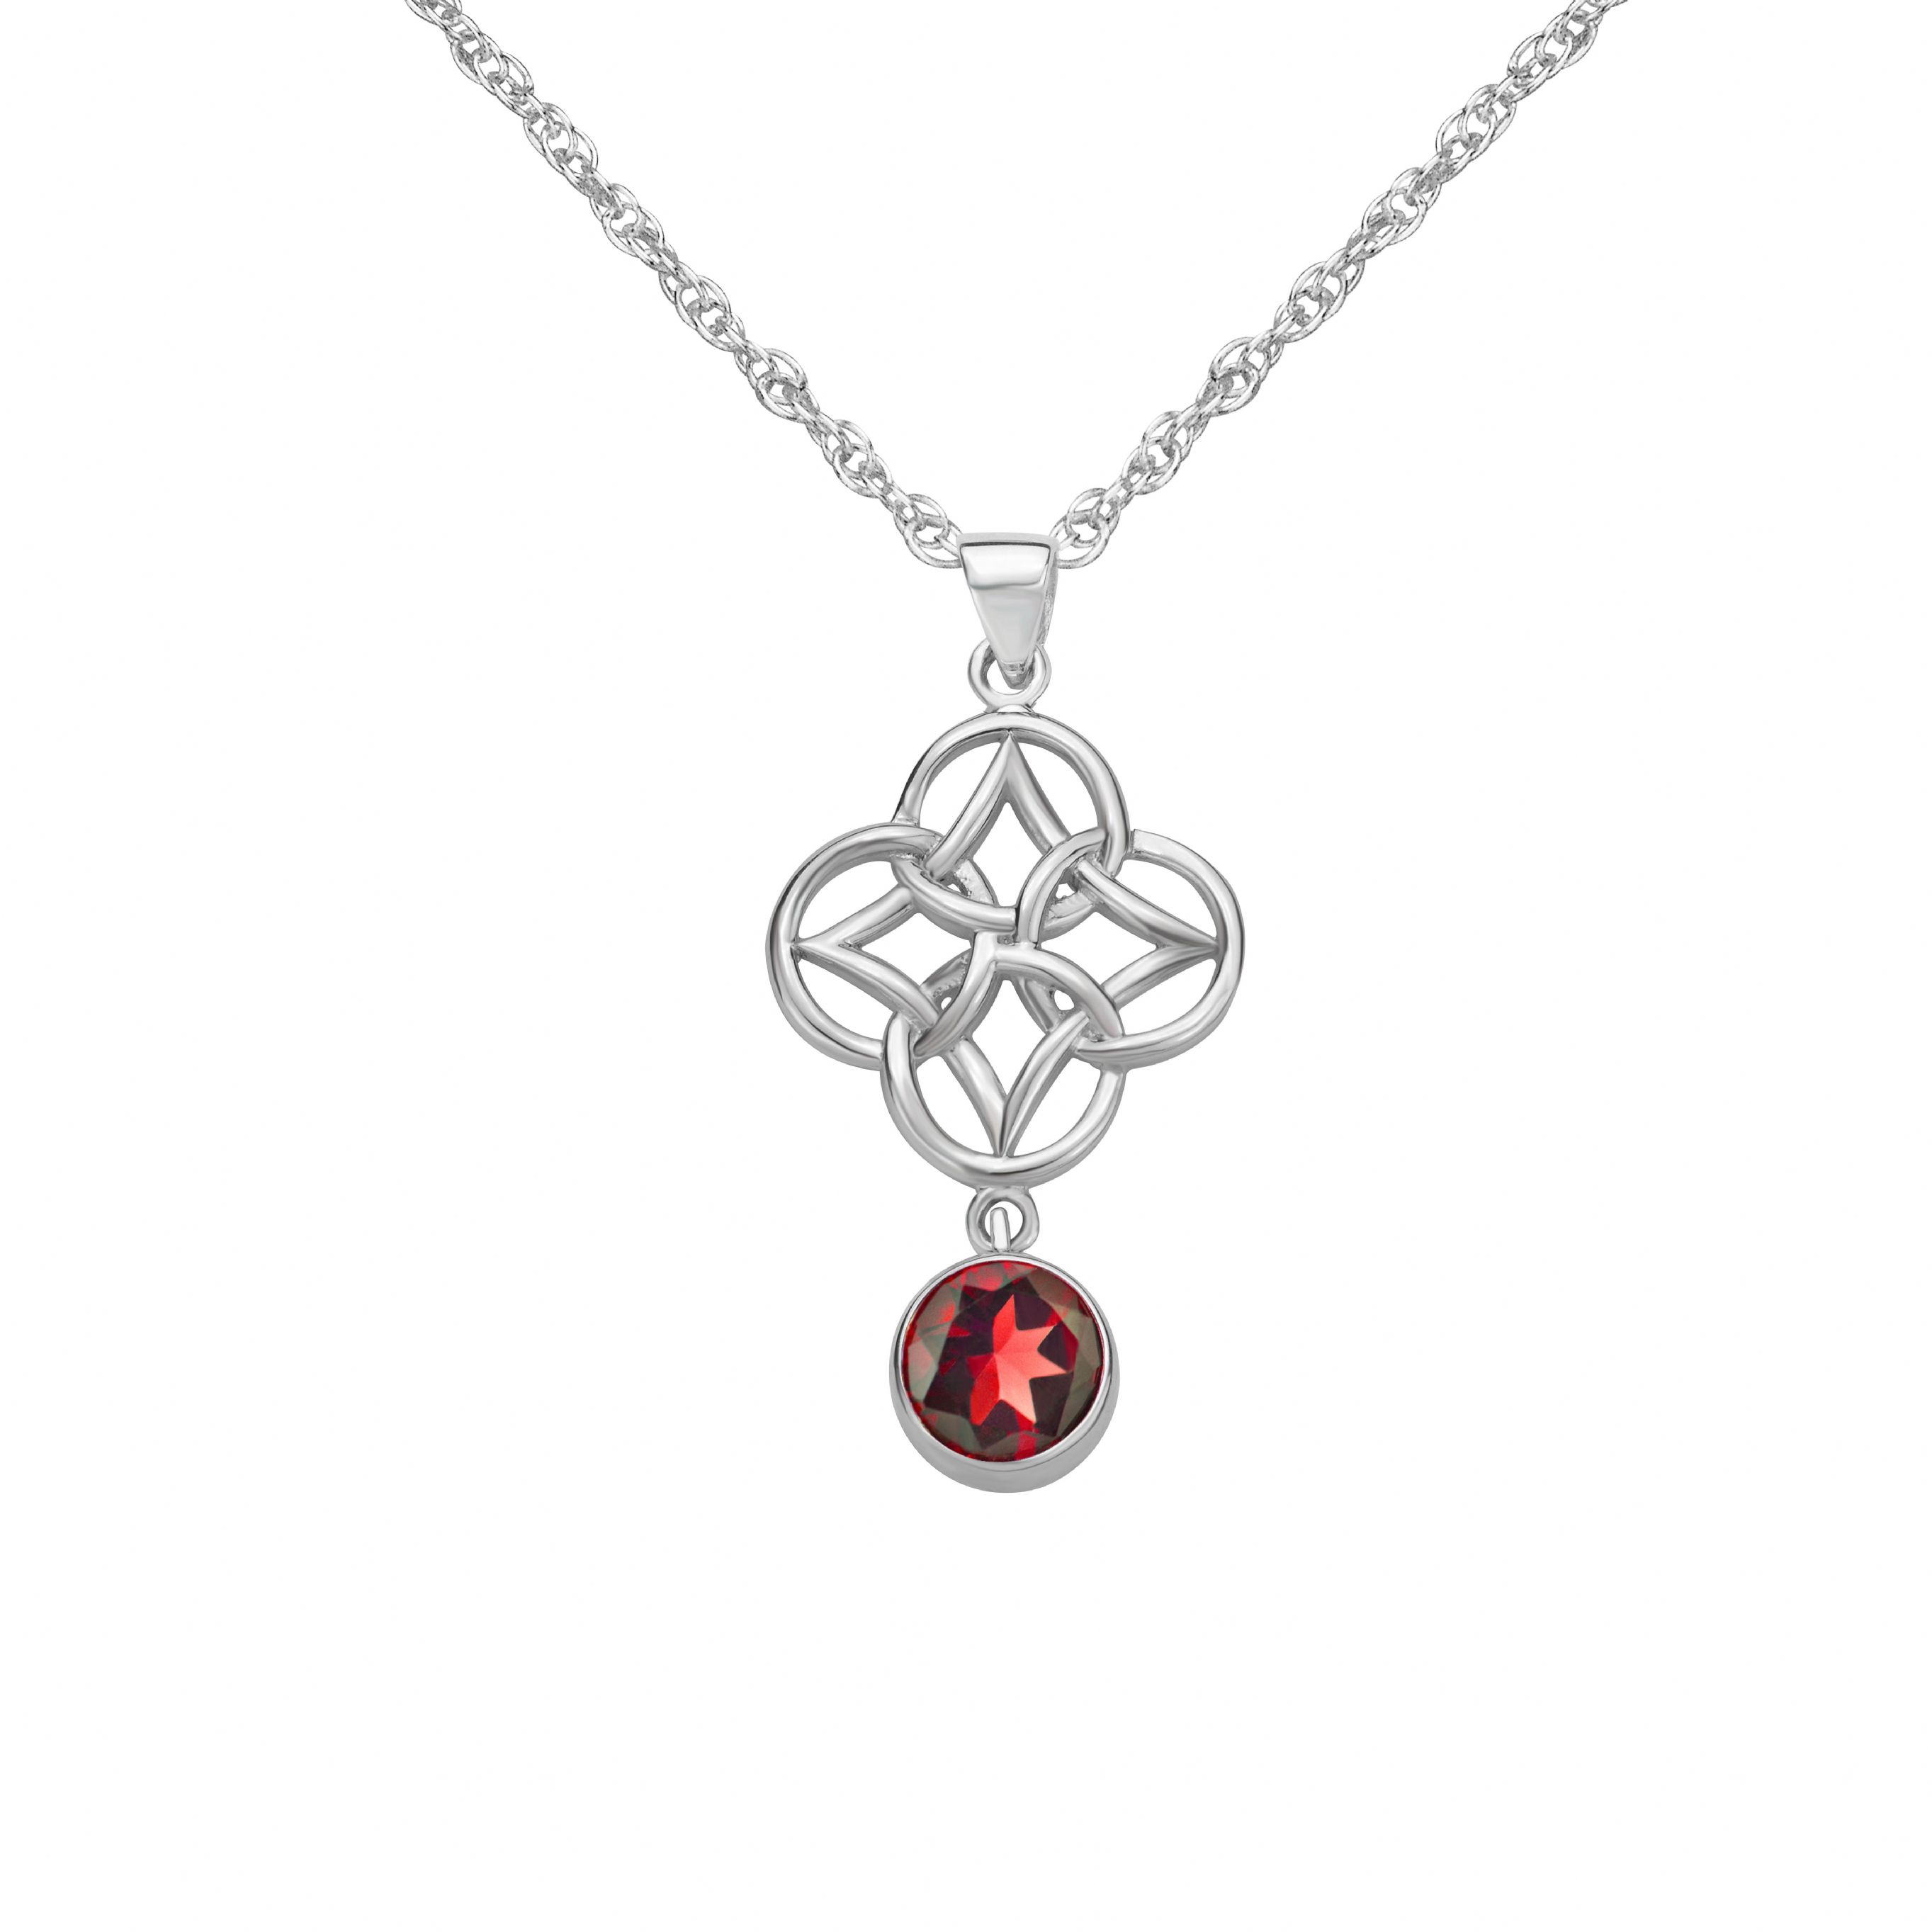 comes in symbol specially its powers with and usa duty heavy a life designed made of each the description necklace pendant celtic pin gifts includes own unity